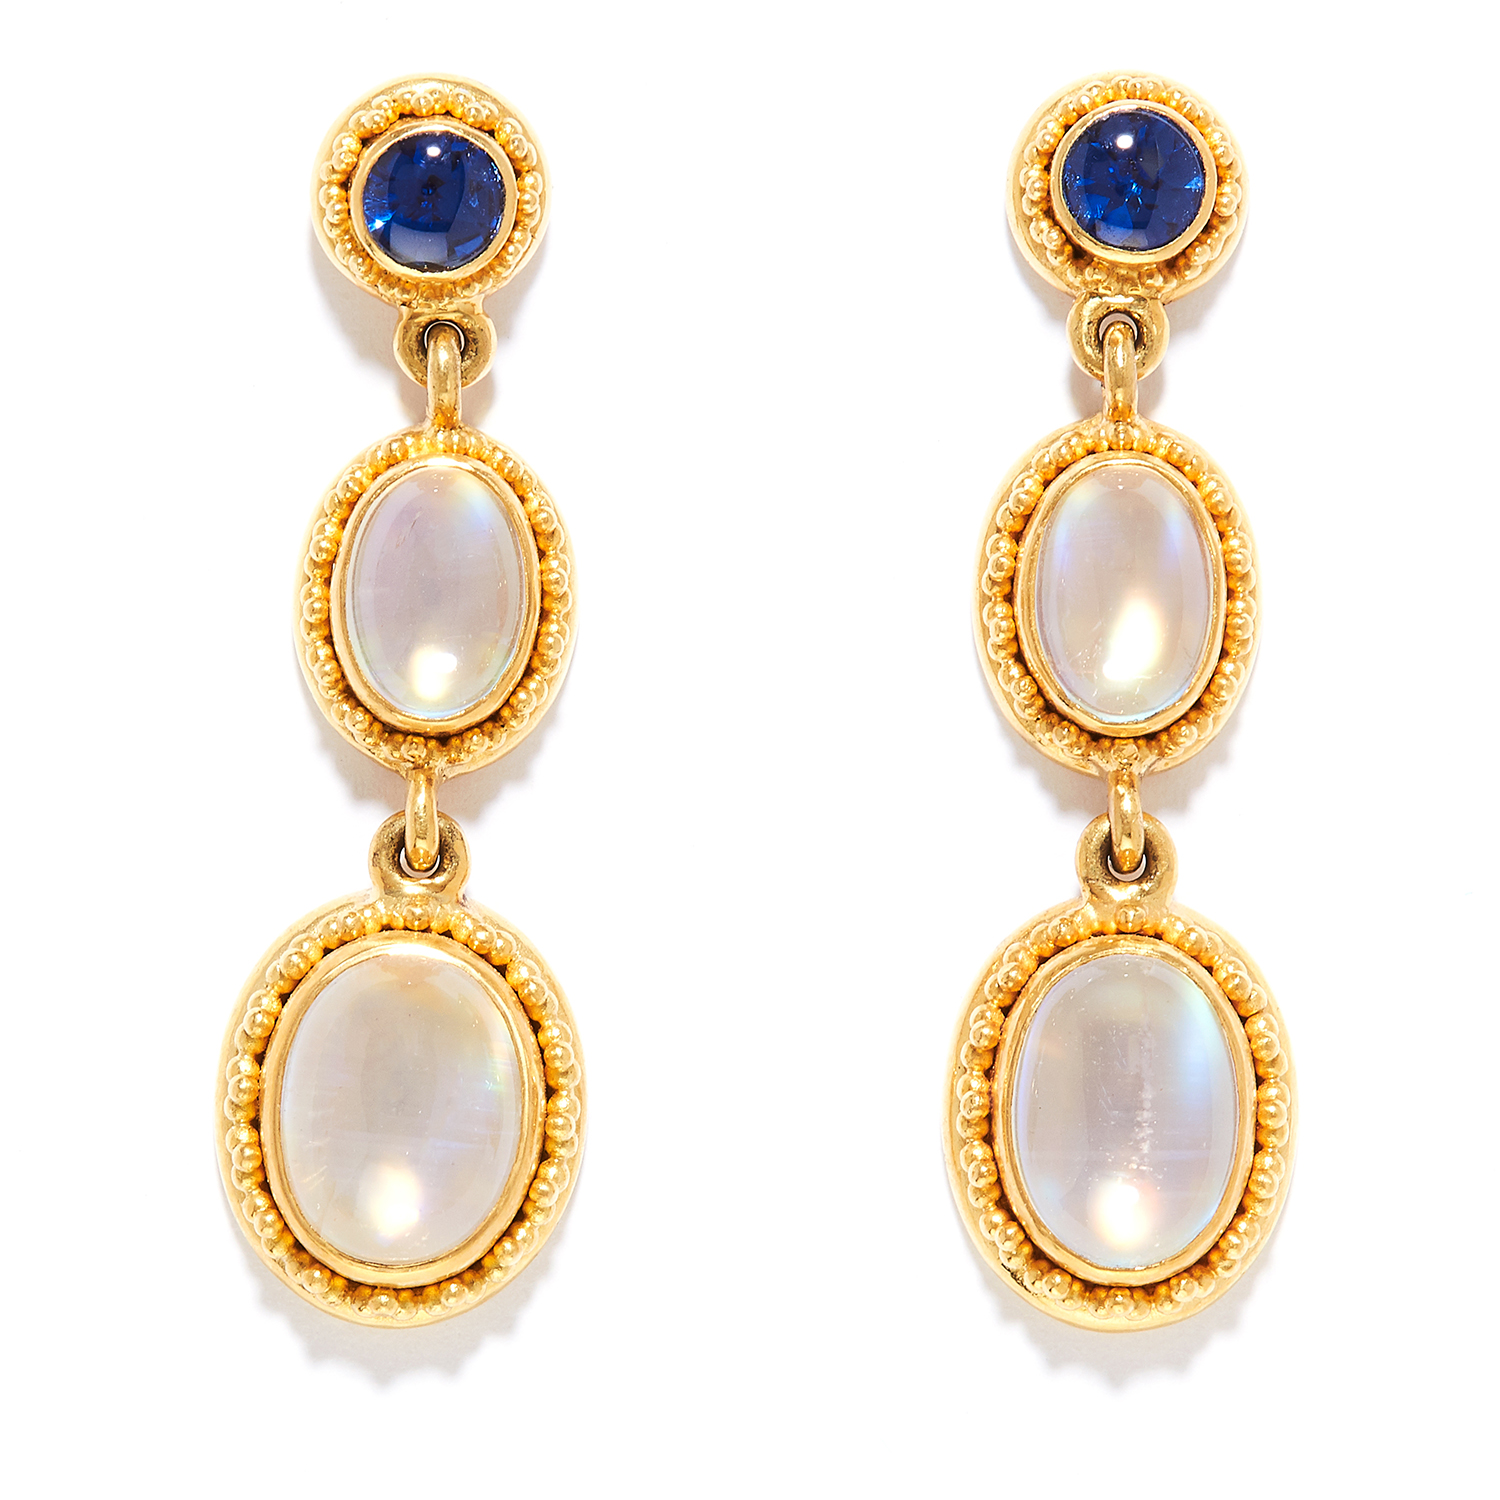 MOONSTONE AND SAPPHIRE DROP EARRINGS in 22ct yellow gold, the three articulated links set with